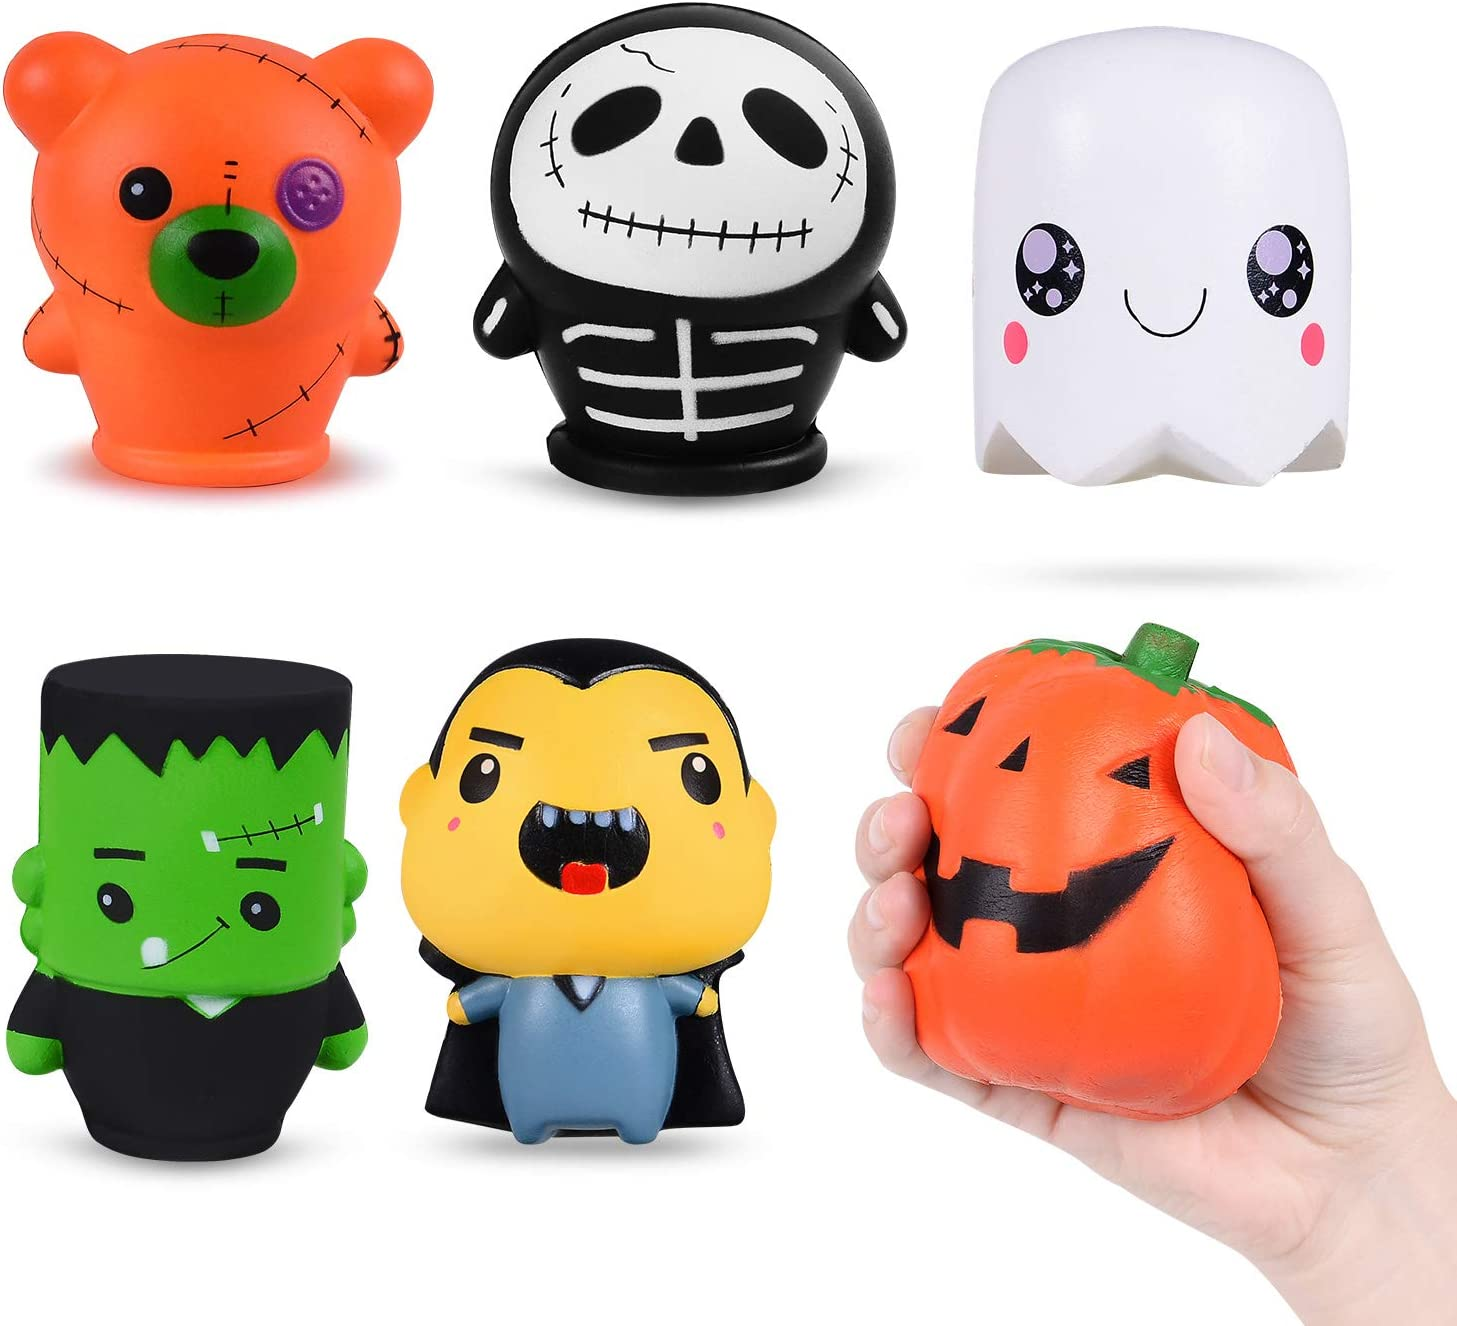 HITOP Halloween Squishy Toys Gifts for Kids Adults Slow Rising Toys for Stress Relief Sensory Games Party Favor Decoration-6 Pack